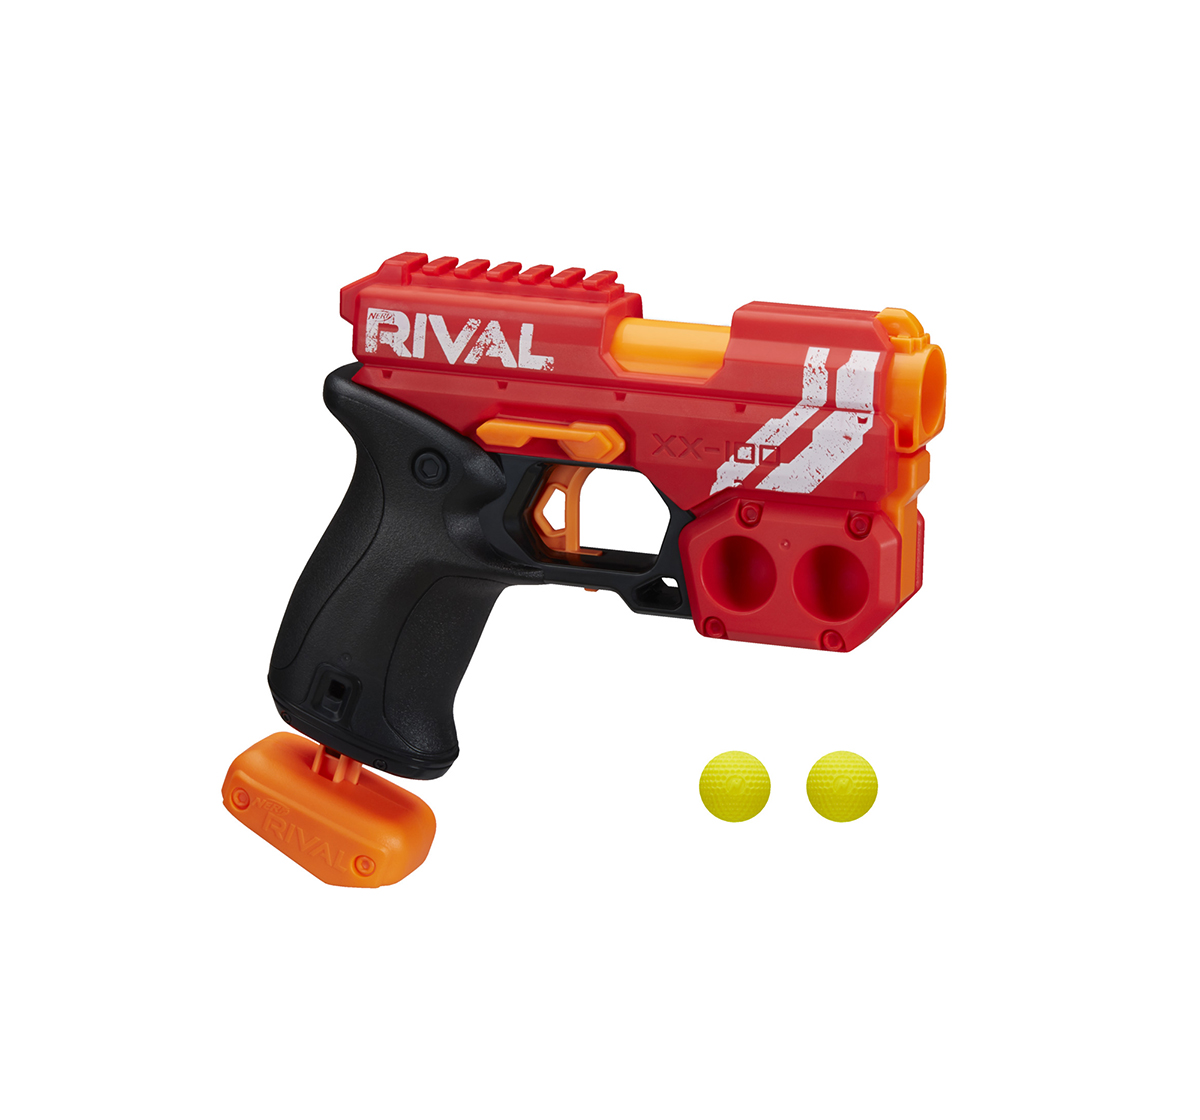 Nerf | Nerf Rival Knockout XX-100 Blaster Toy Gun Assorted -- Round Storage, 90 FPS Velocity, Breech Load  -- Includes 2 Official Nerf Rival Rounds -- Team Red Blasters for Kids age 14Y+